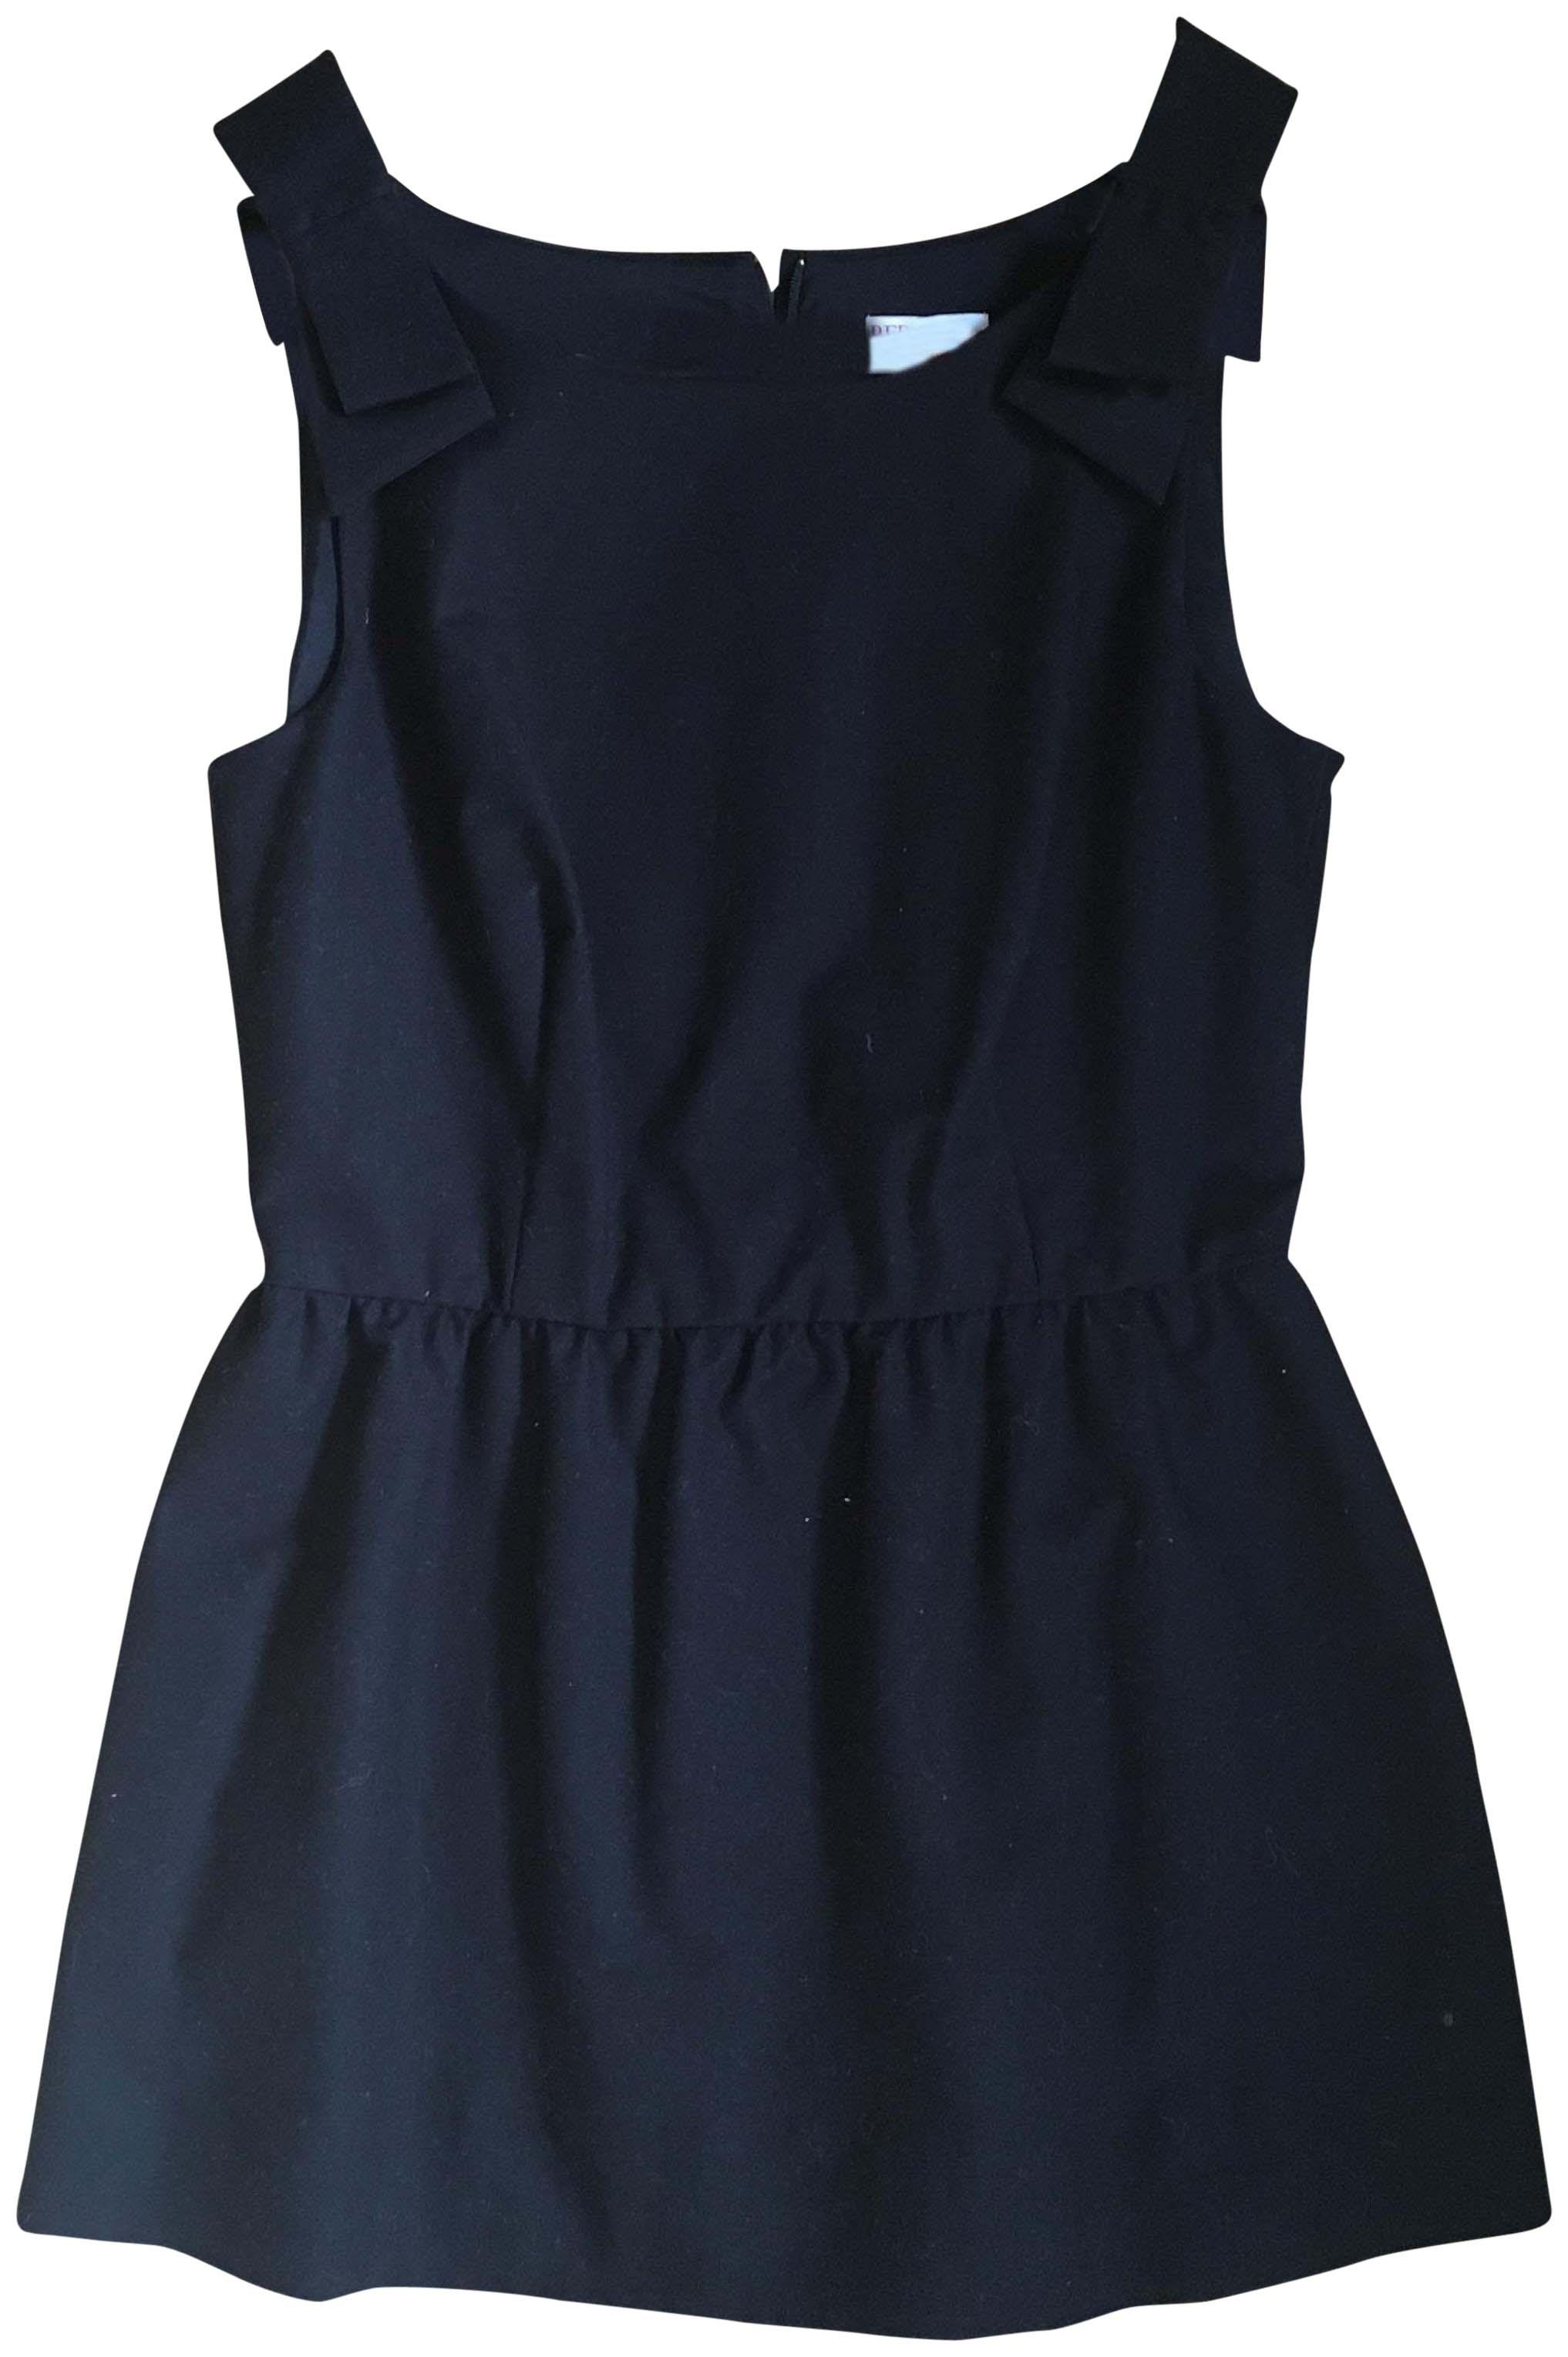 bow detail sleeveless blouse - Blue Red Valentino Explore Cheap Price Outlet Discount Sale Buy Cheap Footaction Outlet High Quality Reliable aAj0jnQS